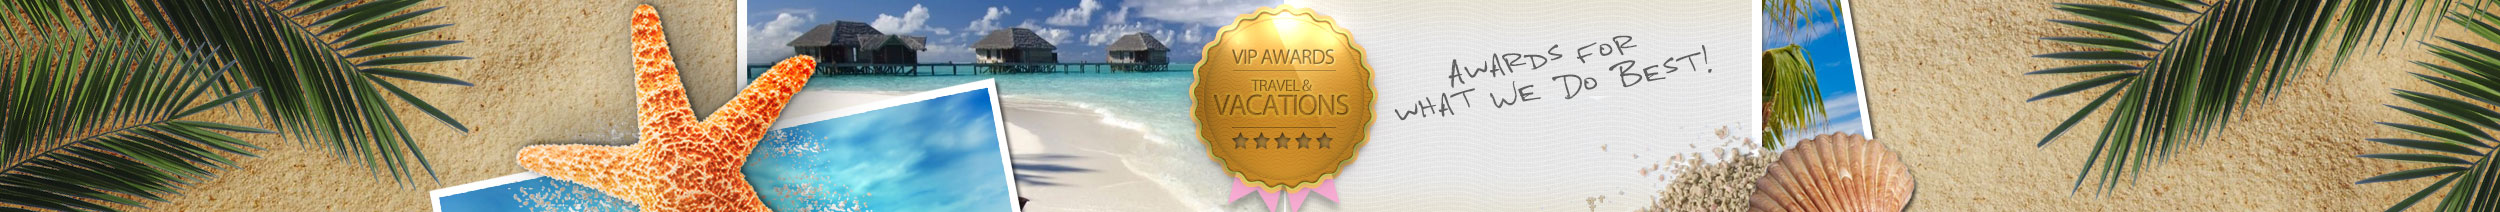 VIP Vacations Wins Top Producer at the RIU Resort Awards 2017